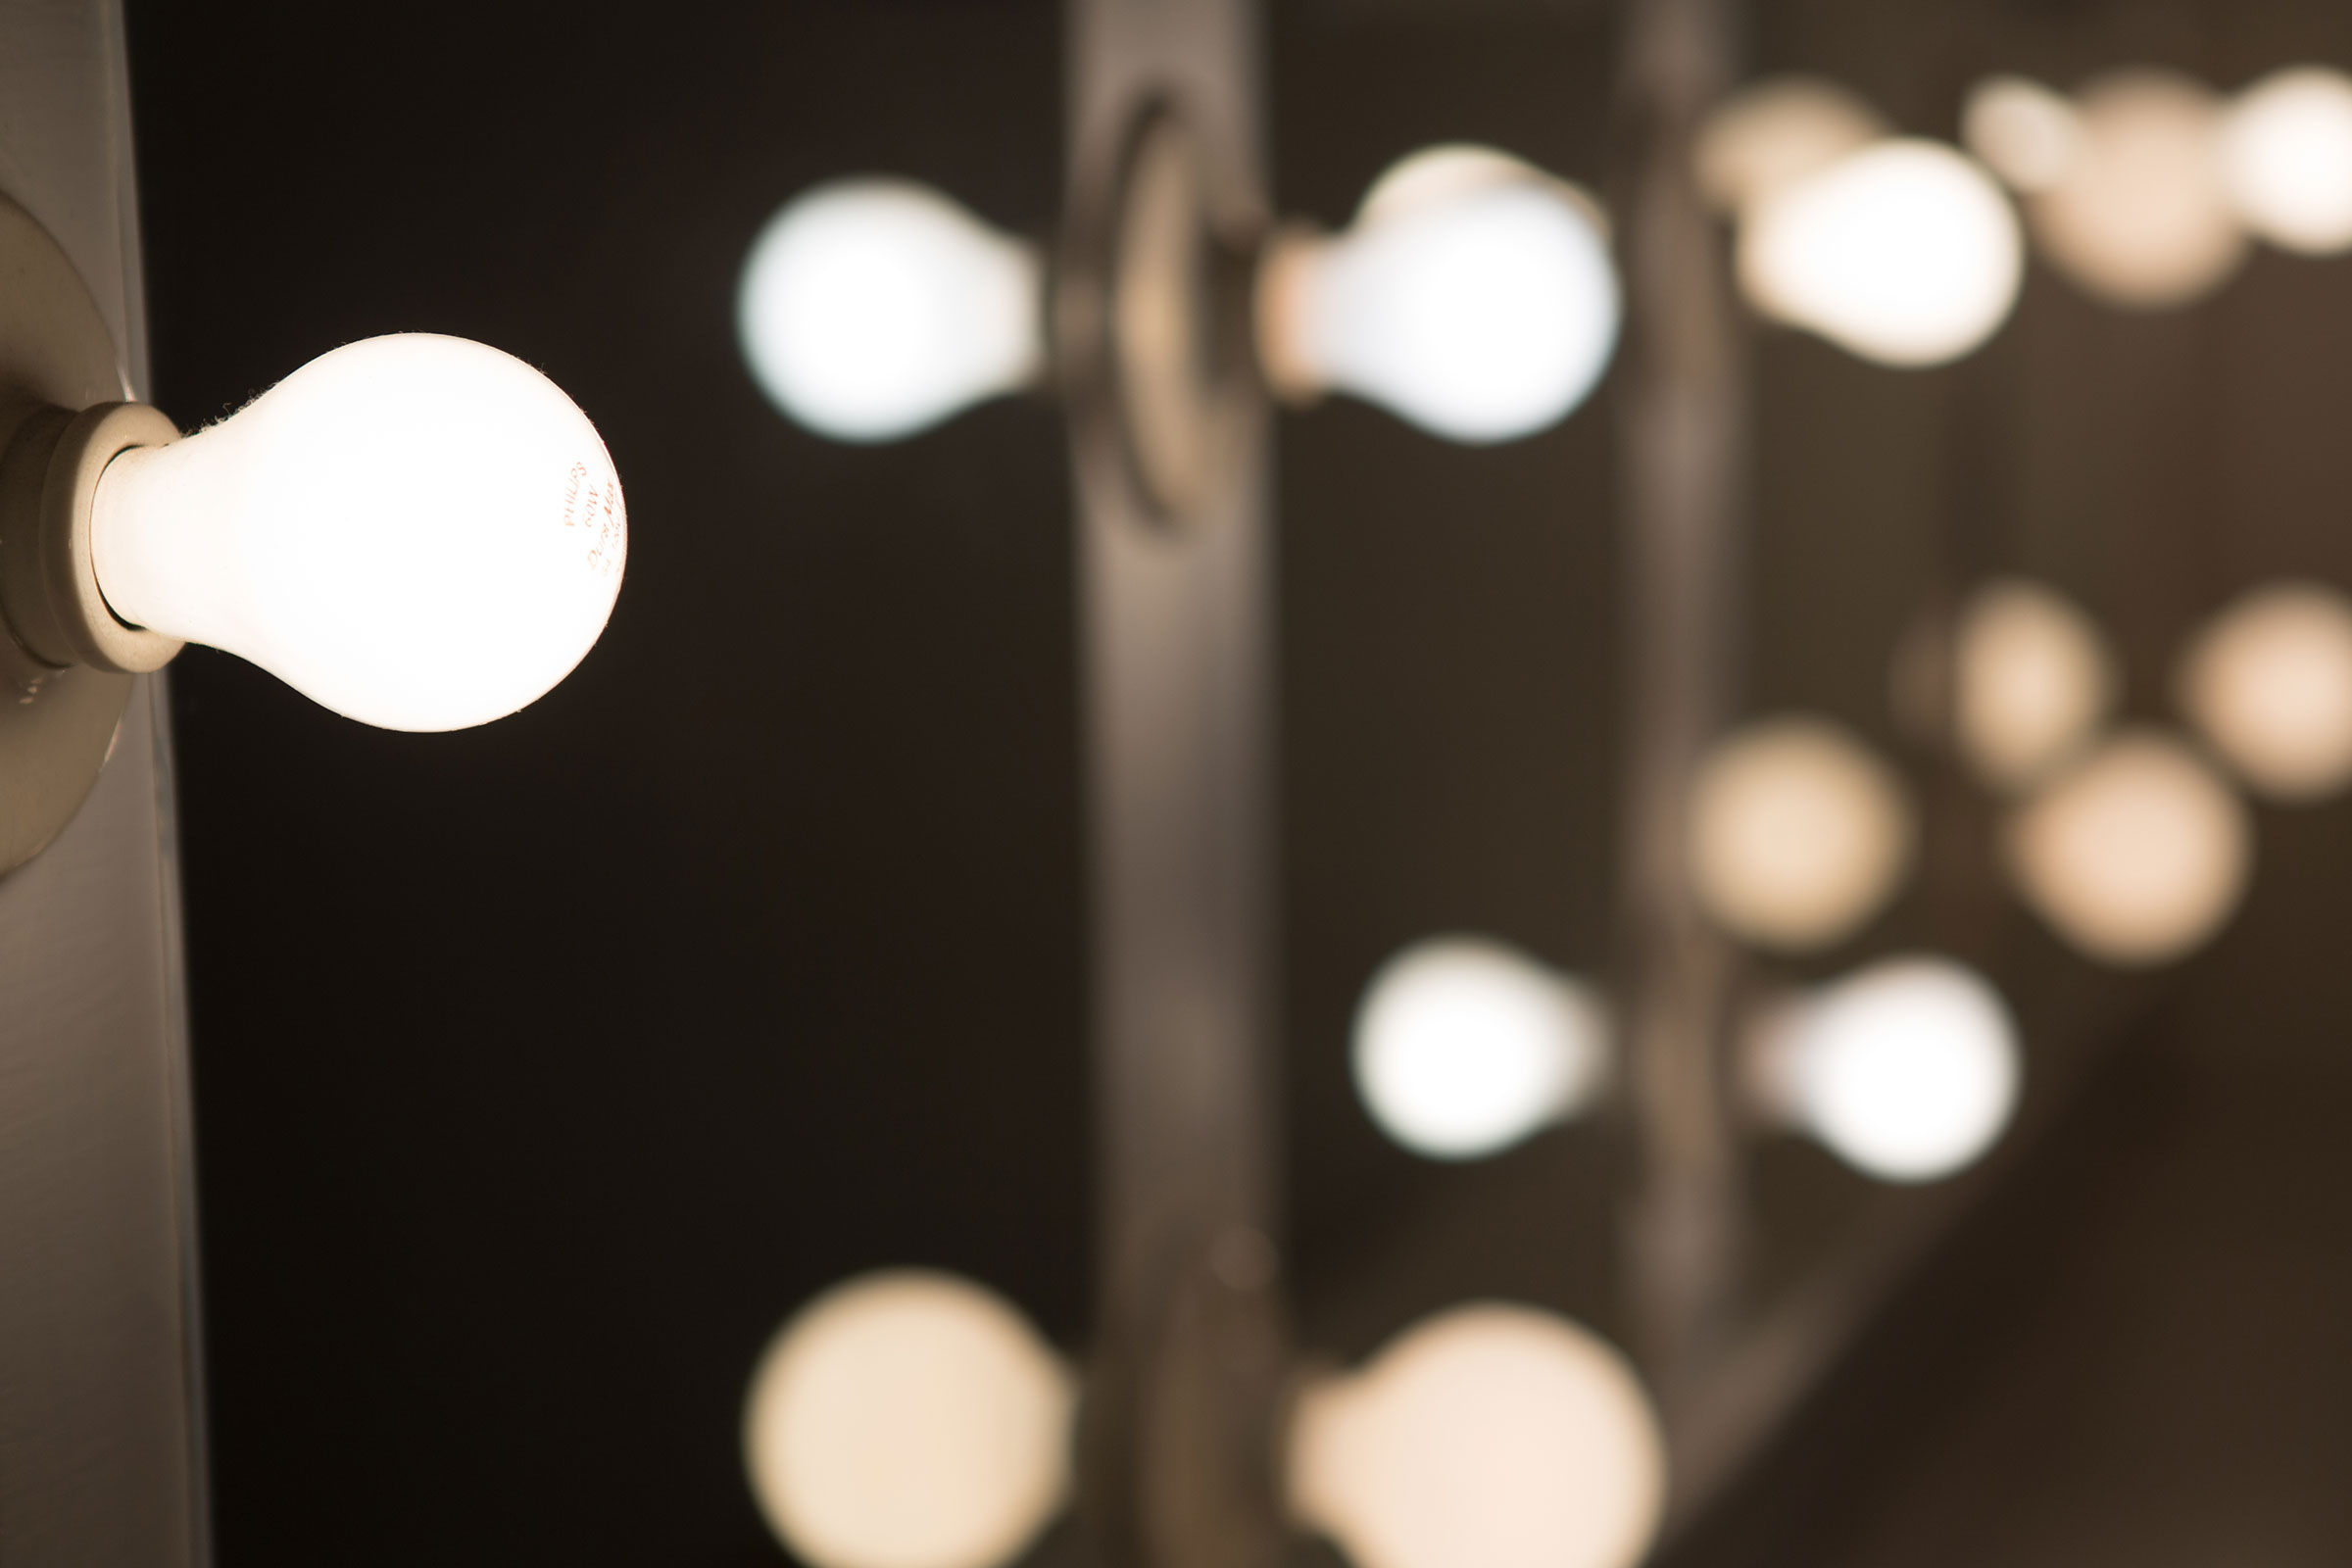 dressing room lights close up